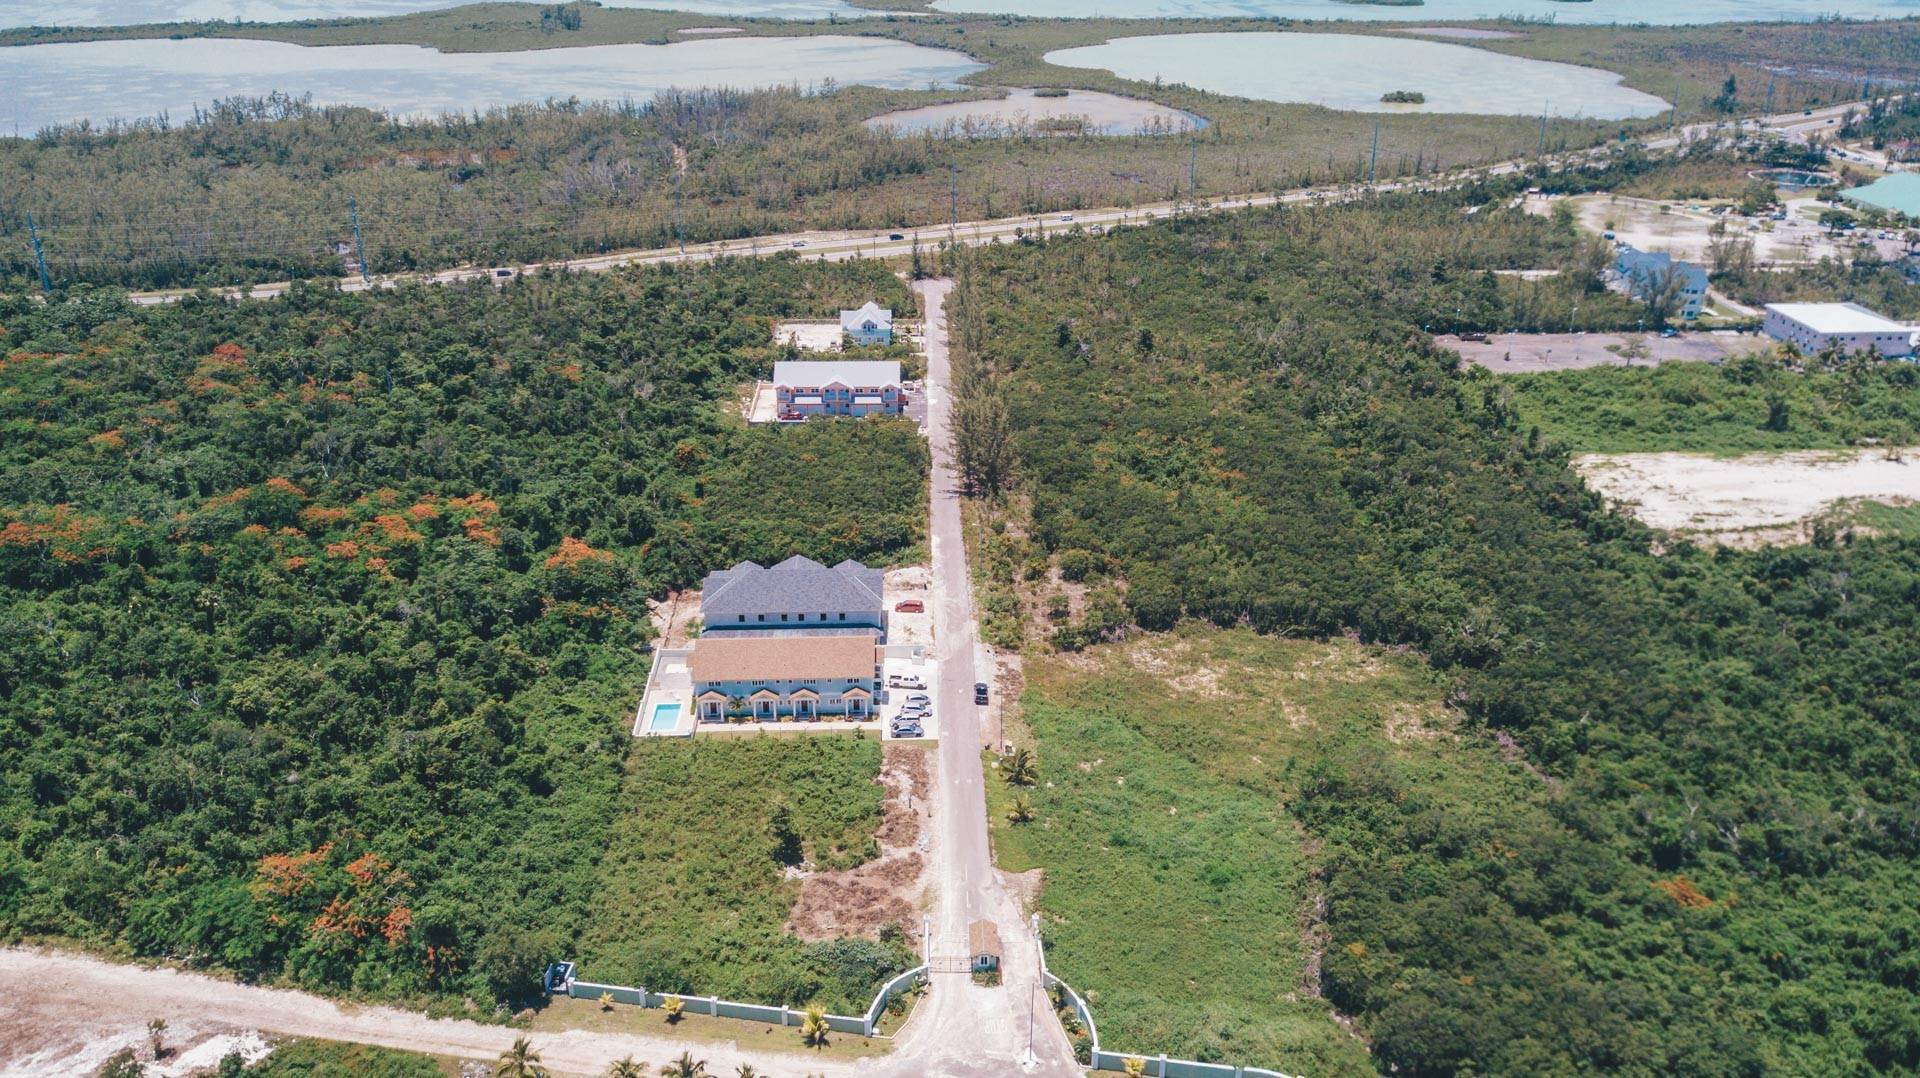 11. Terreno por un Venta en Lot 13 West Lake Plantation - MLS 35050 Nueva Providencia / Nassau, Bahamas